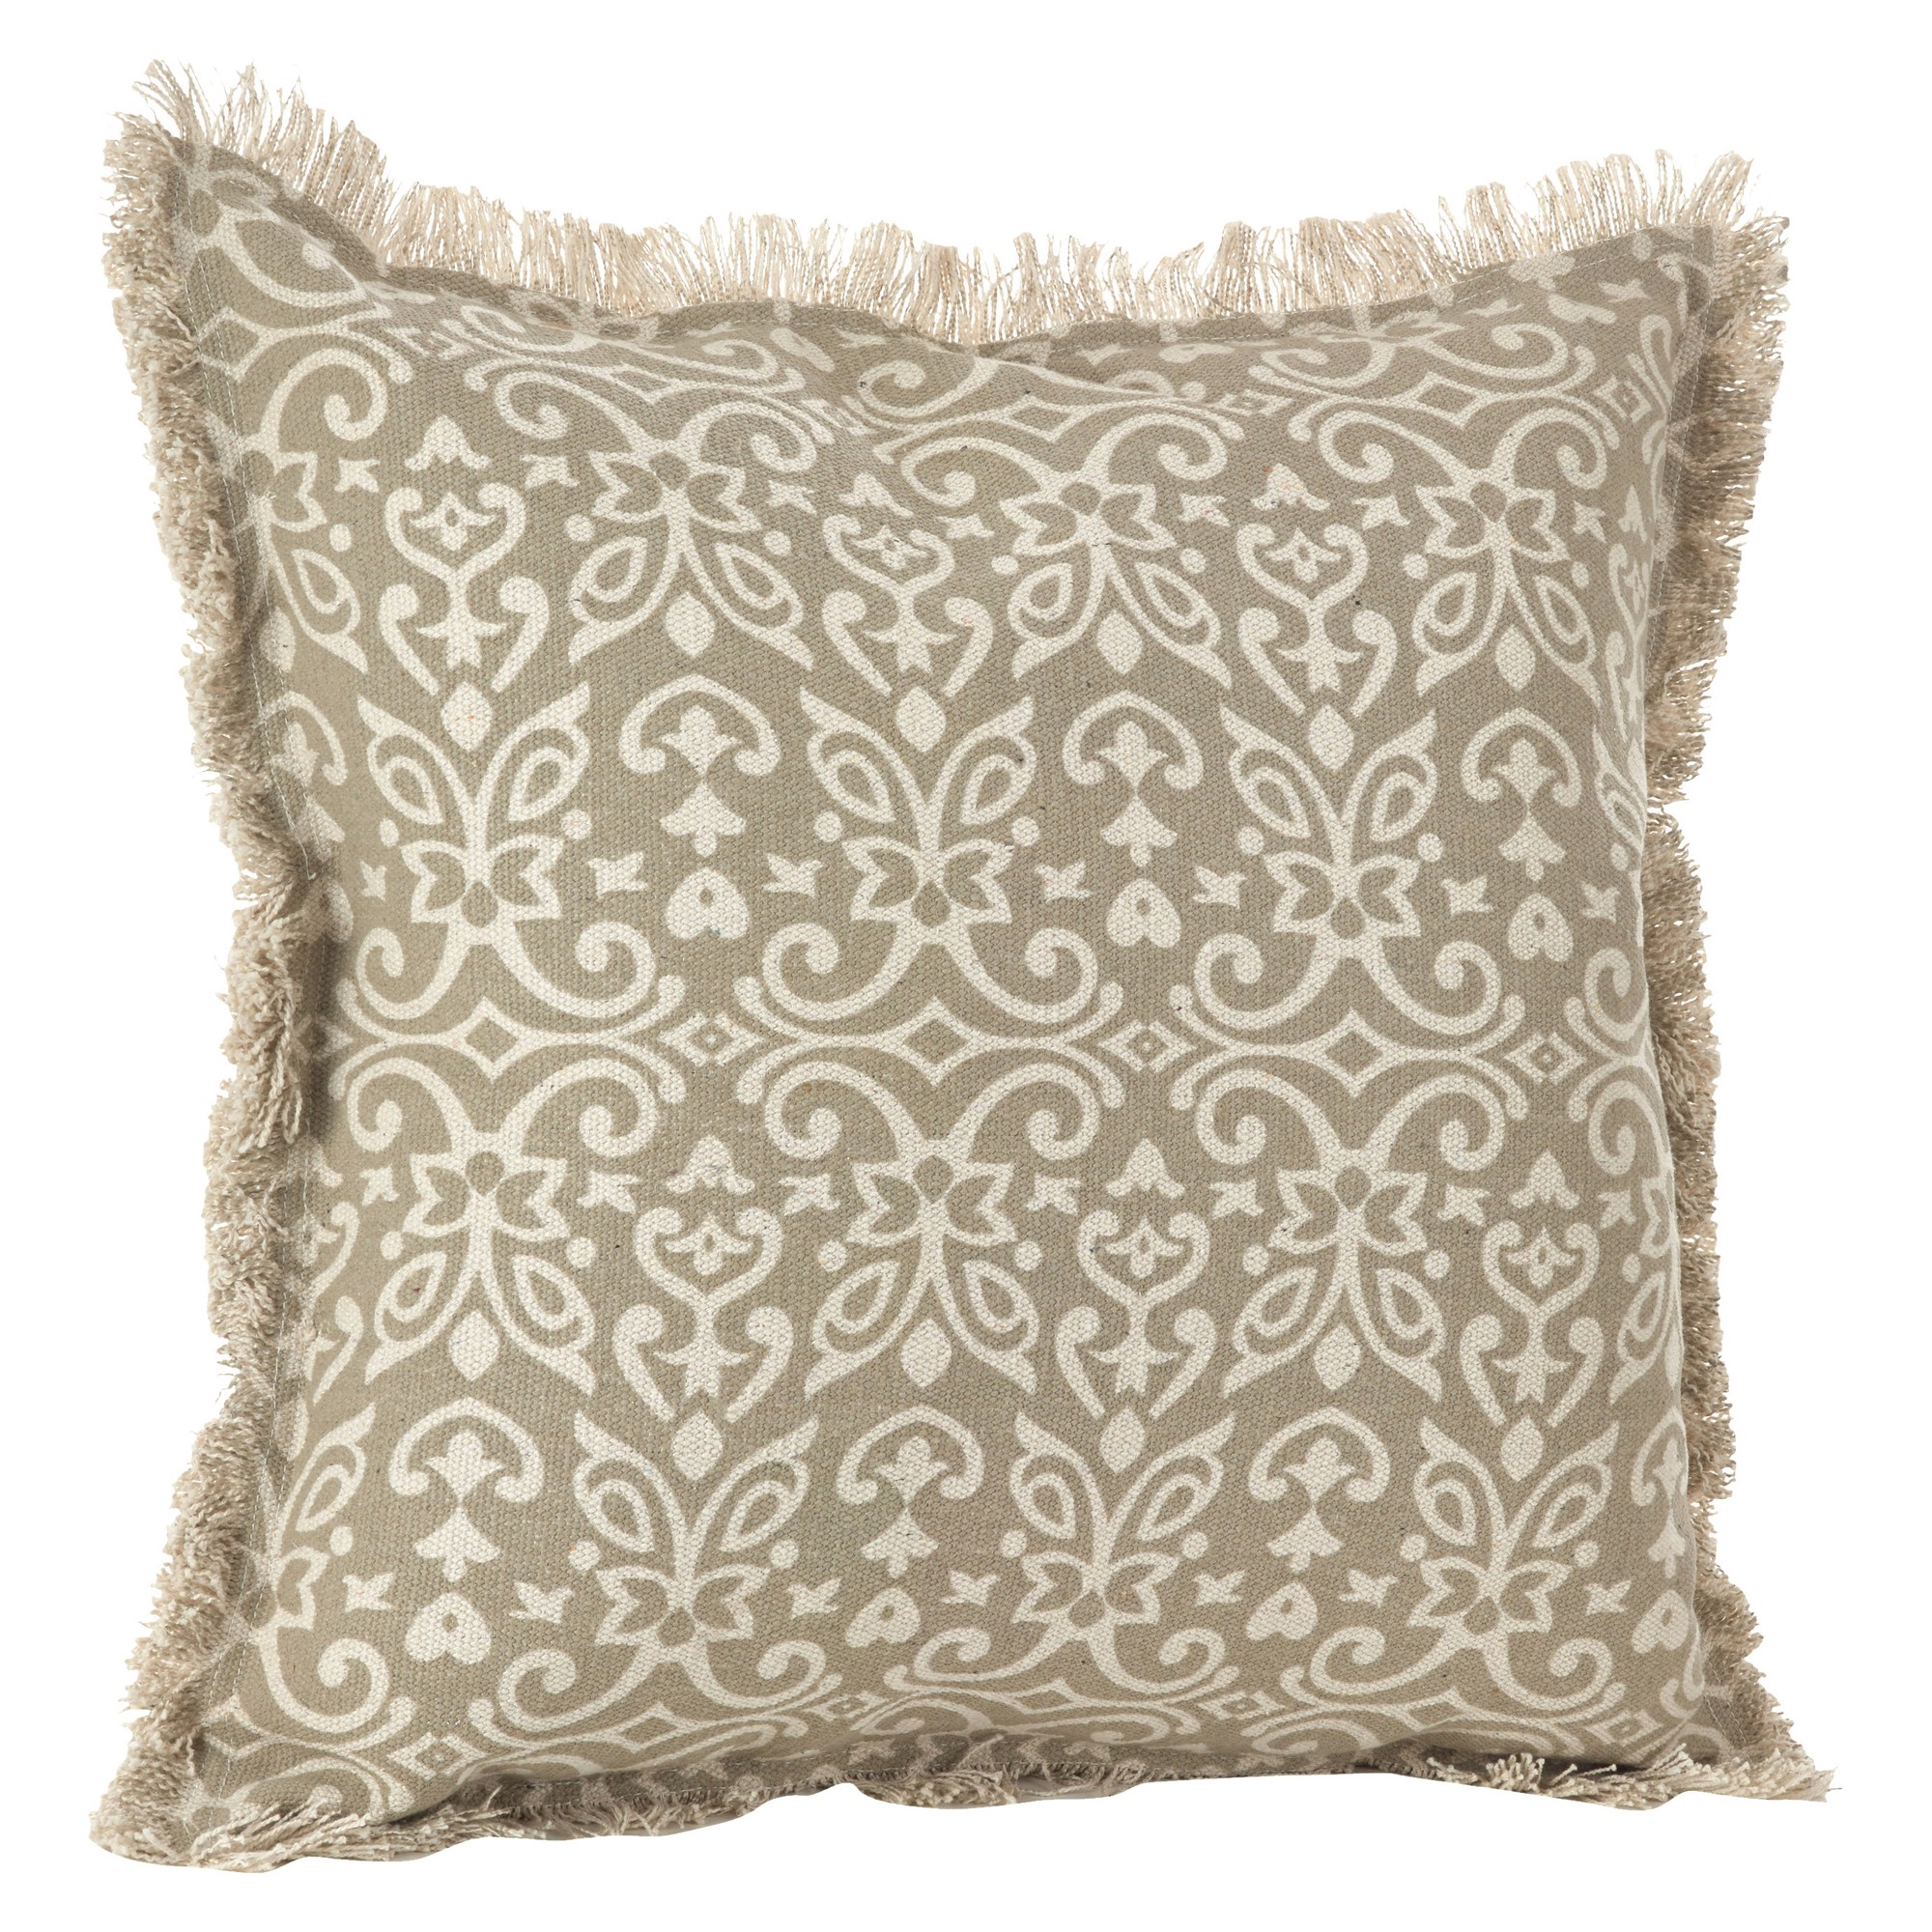 The Pillow Collection Natashaly Damask Linen Down Filled Throw Pillow